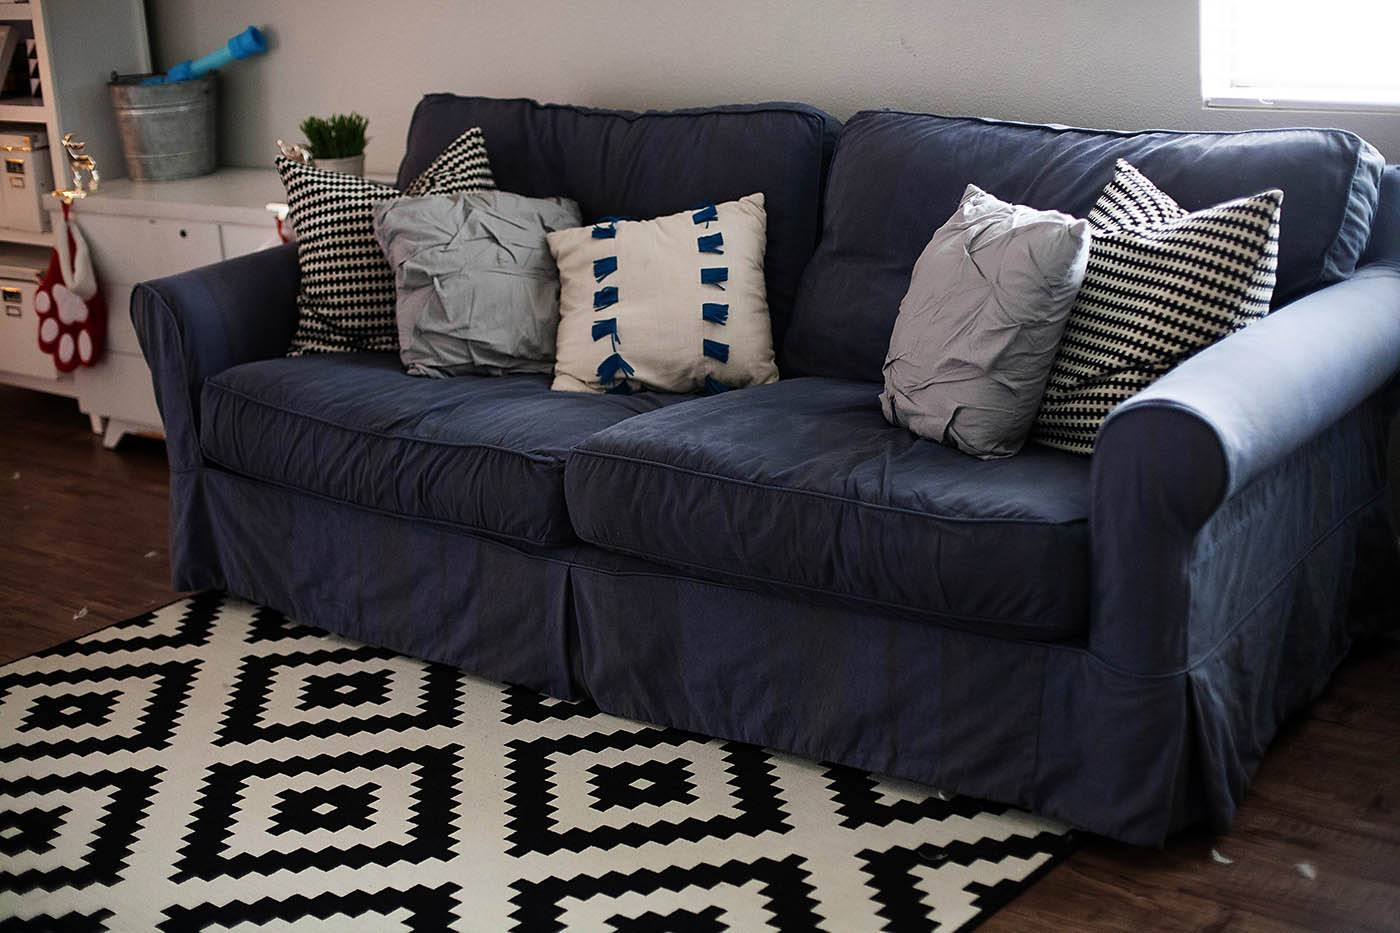 How To Dye A Sofa Slipcover In Navy Blue Slipcovers (Photo 7 of 15)